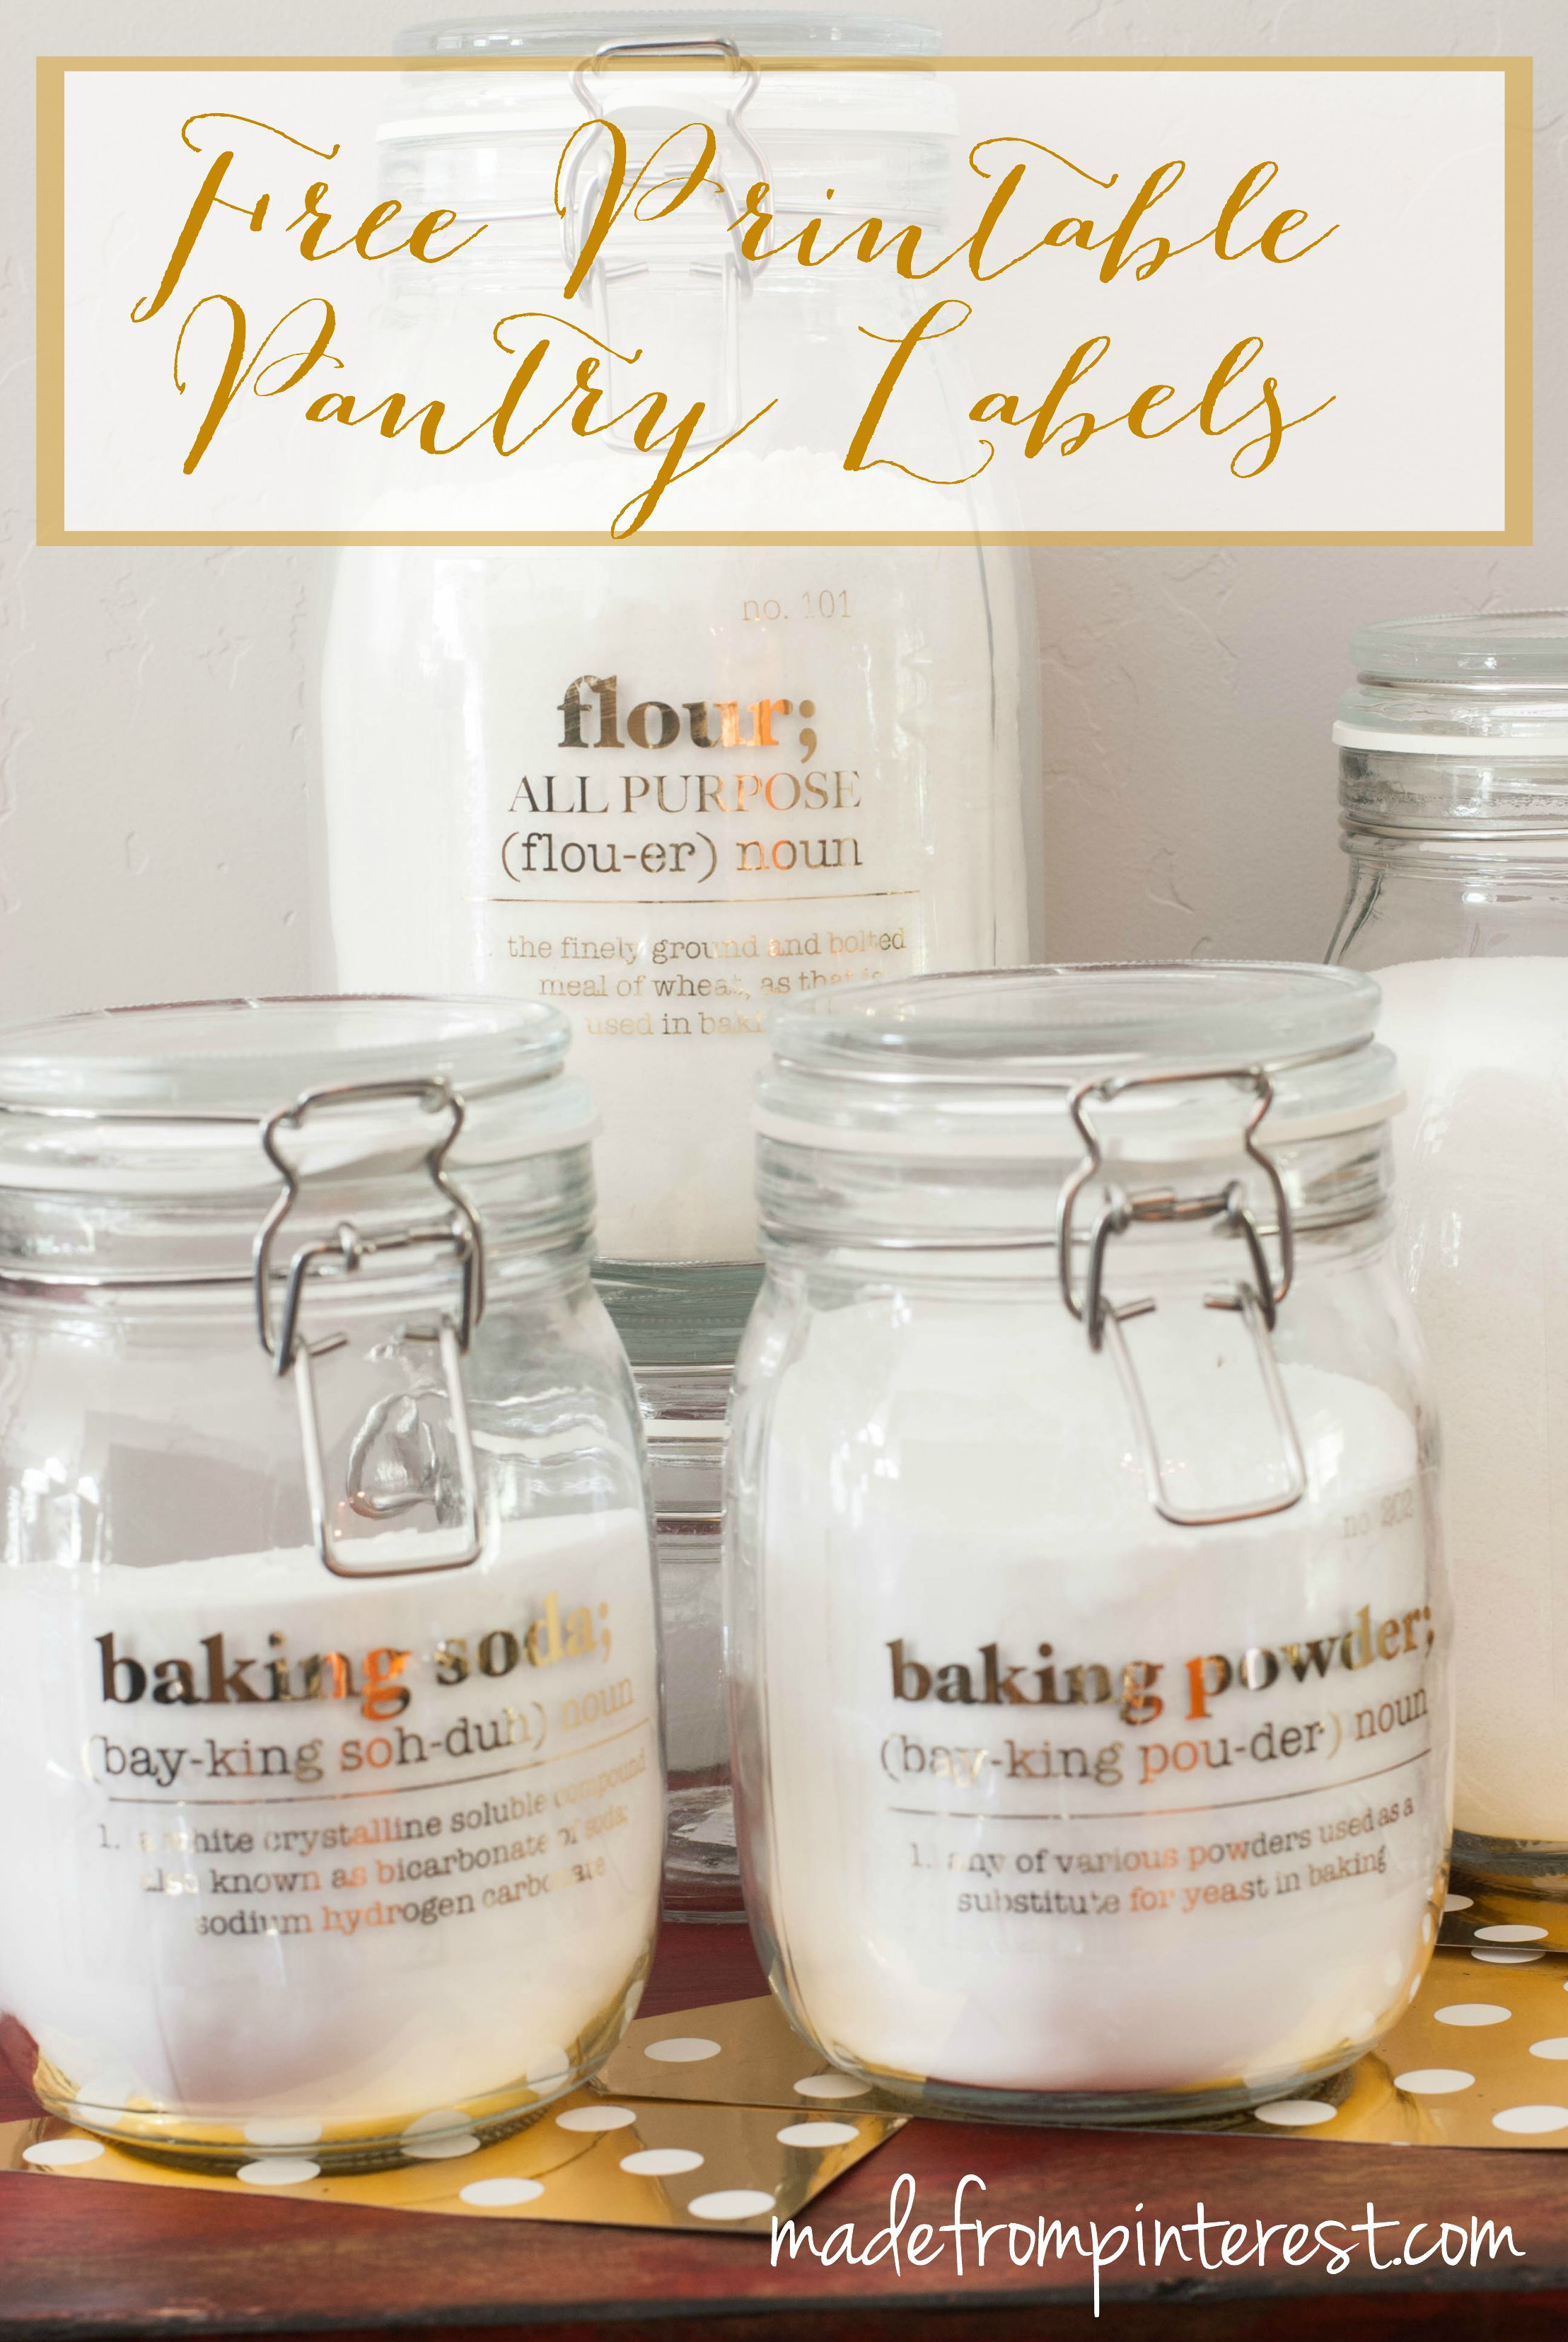 Free Printable Pantry Labels Tgif This Grandma Is Fun